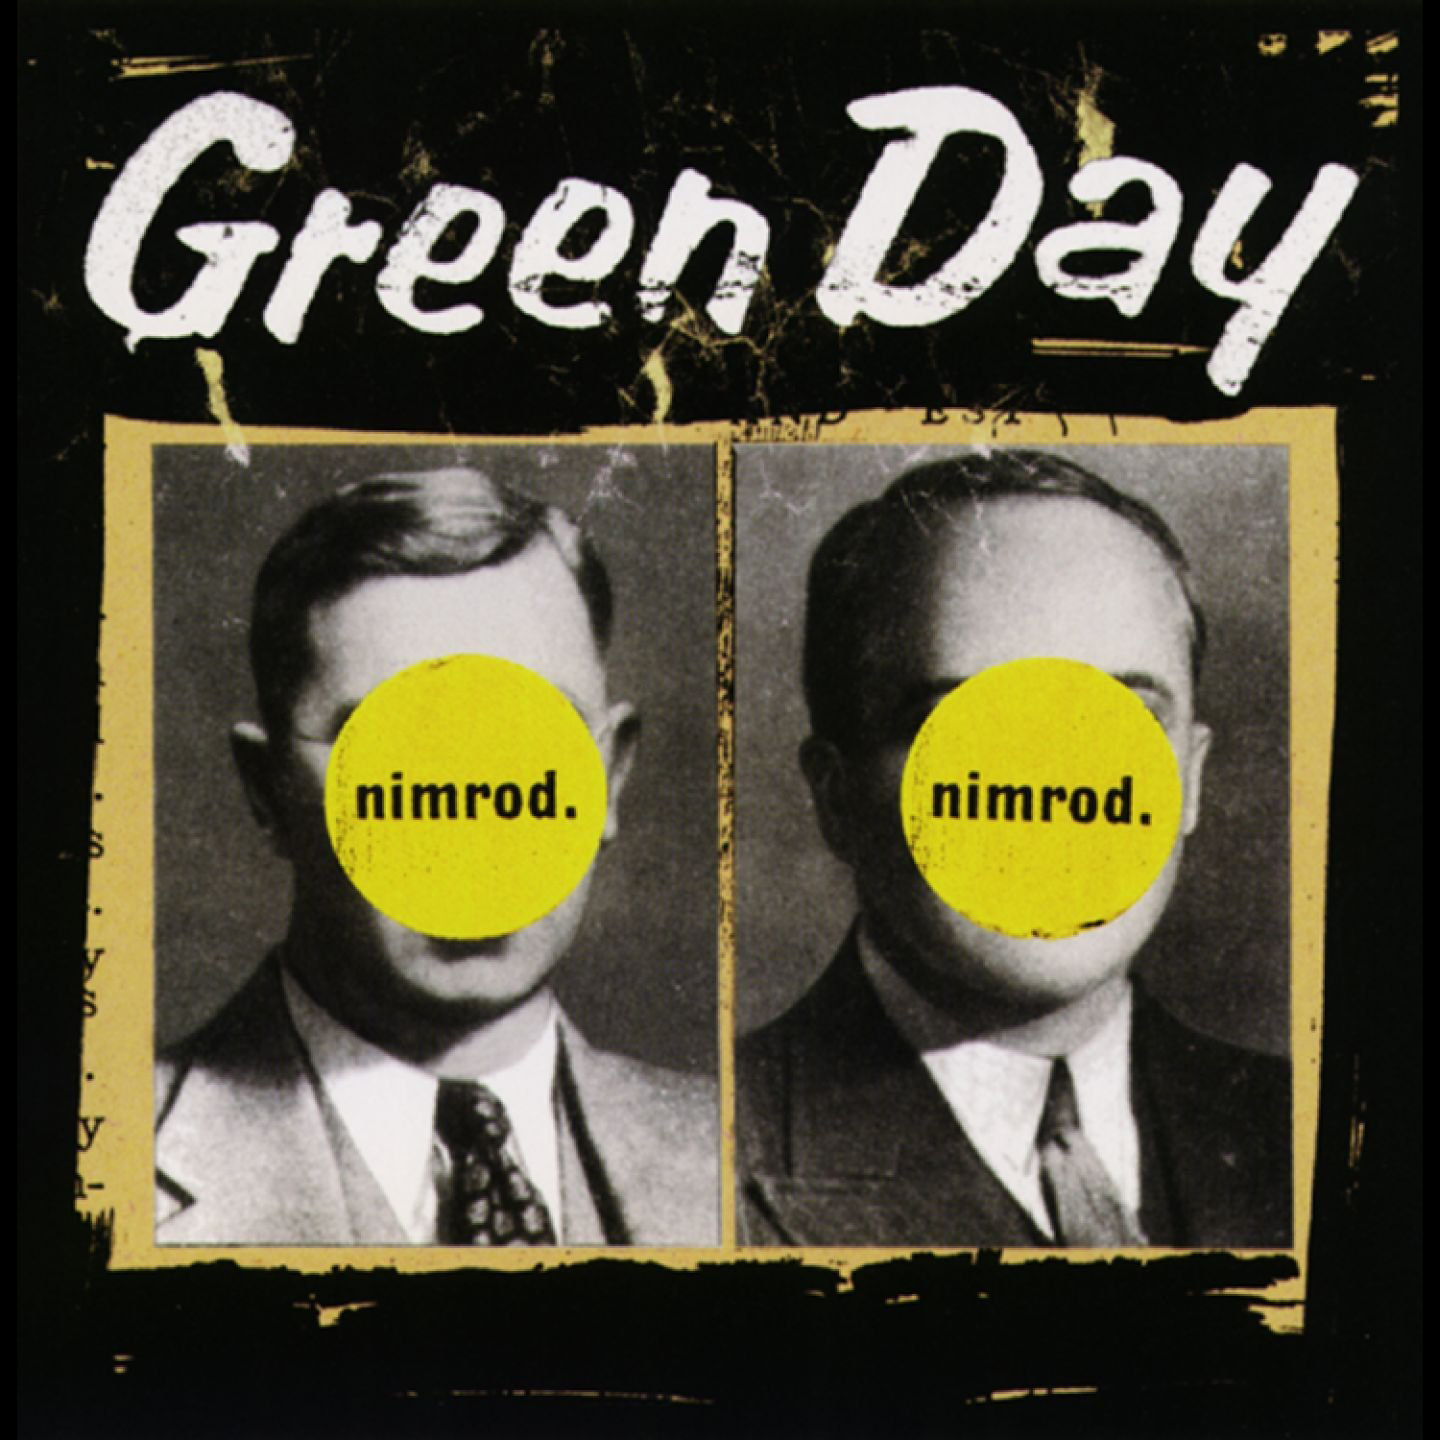 「Good Riddance (Time of Your Life)」収録アルバム『Nimrod』/Green Day